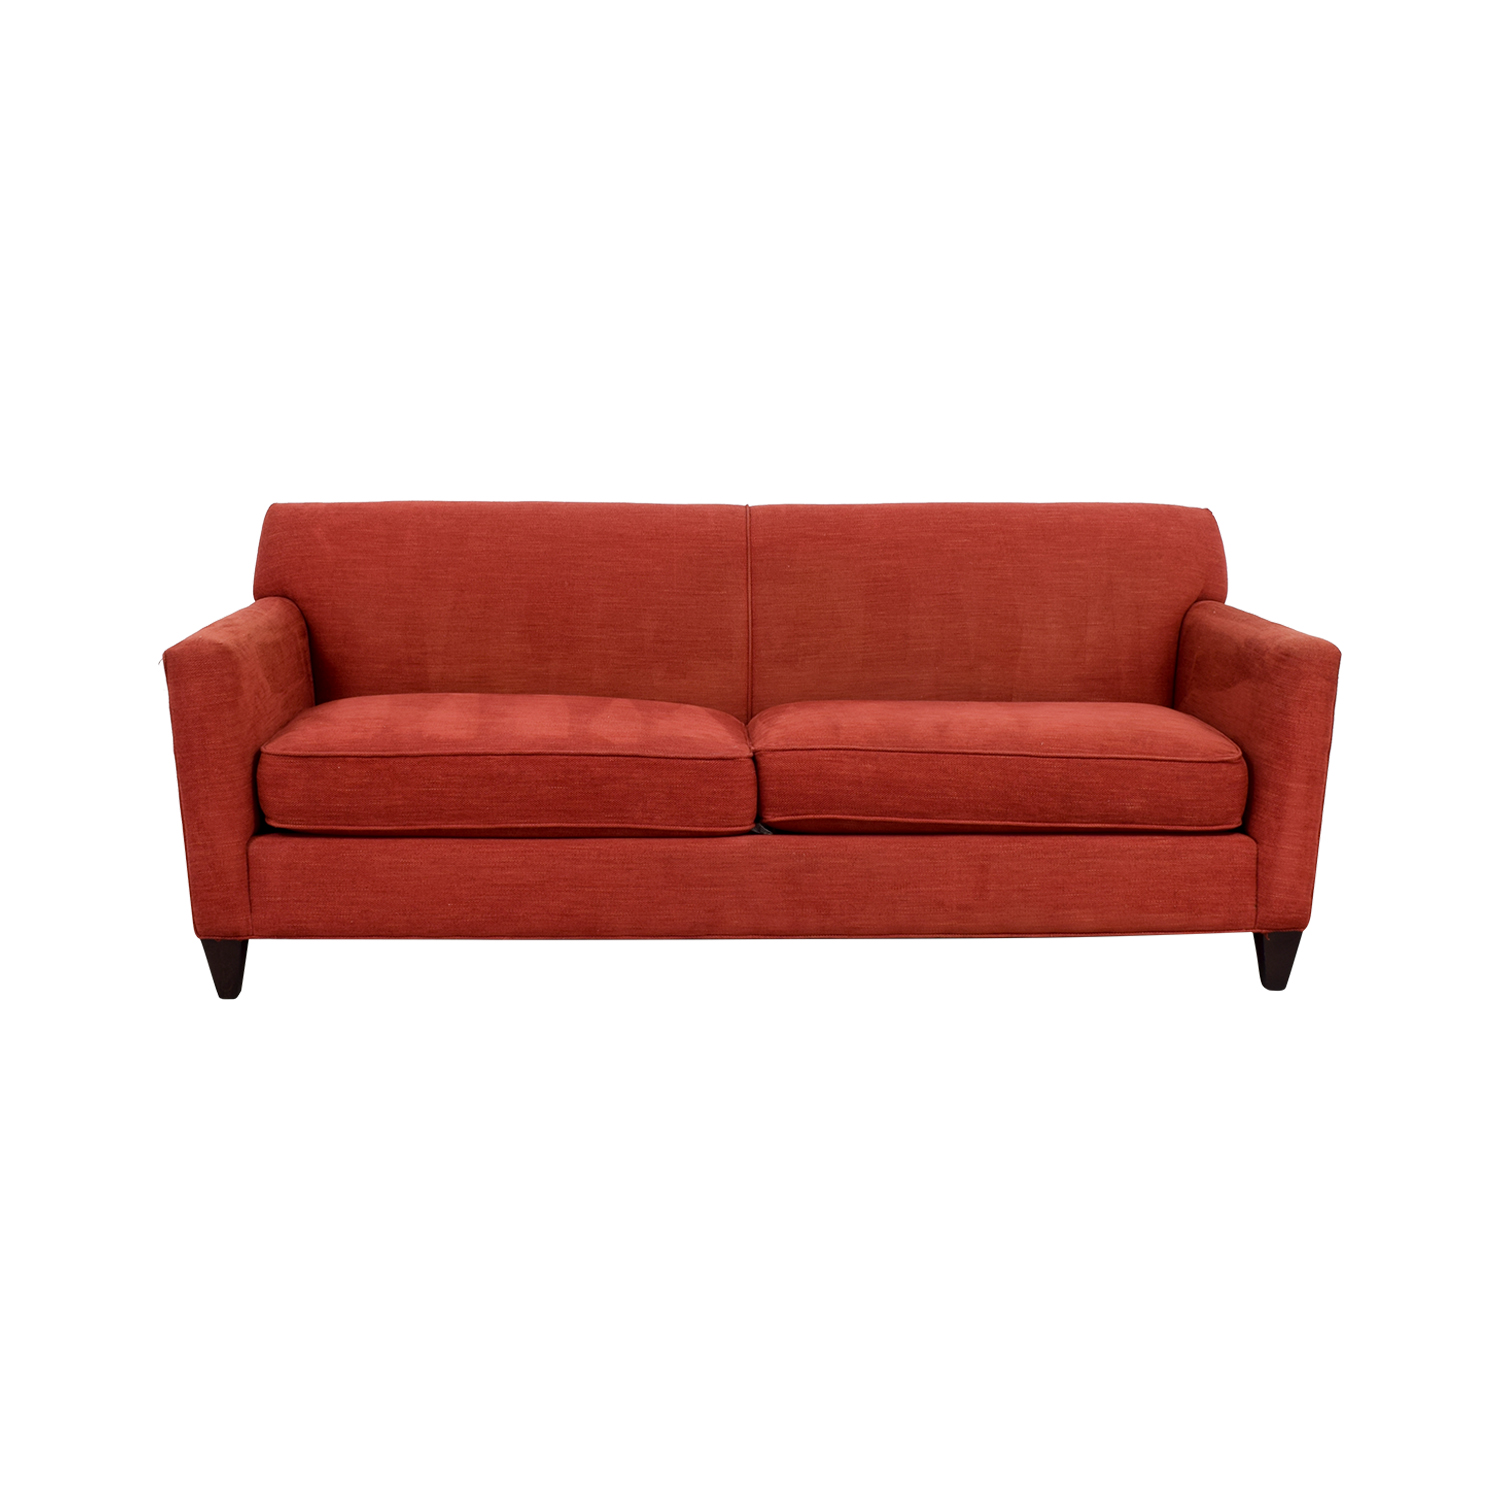 56% OFF - Crate & Barrel Crate & Barrel Cardinal Red Hennessy Sofa / Sofas